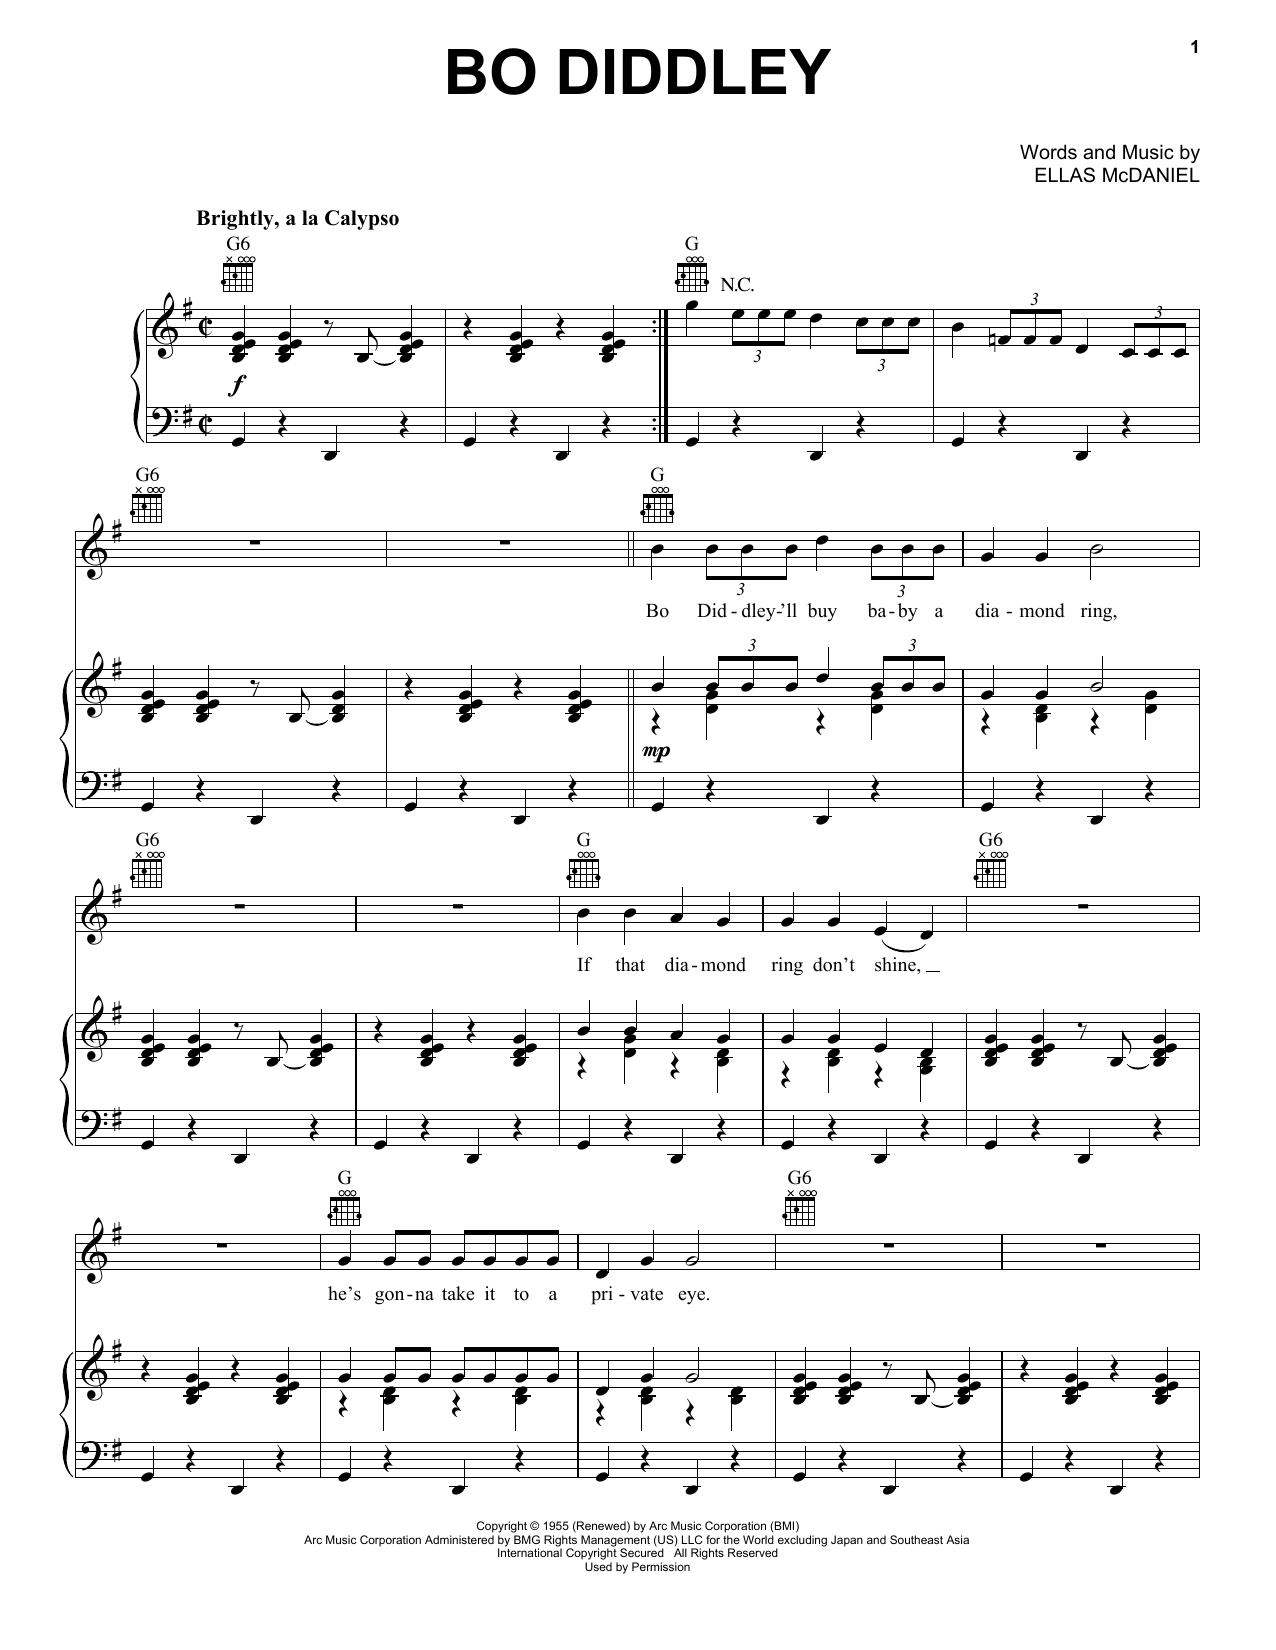 Bo Diddley Bo Diddley sheet music notes and chords